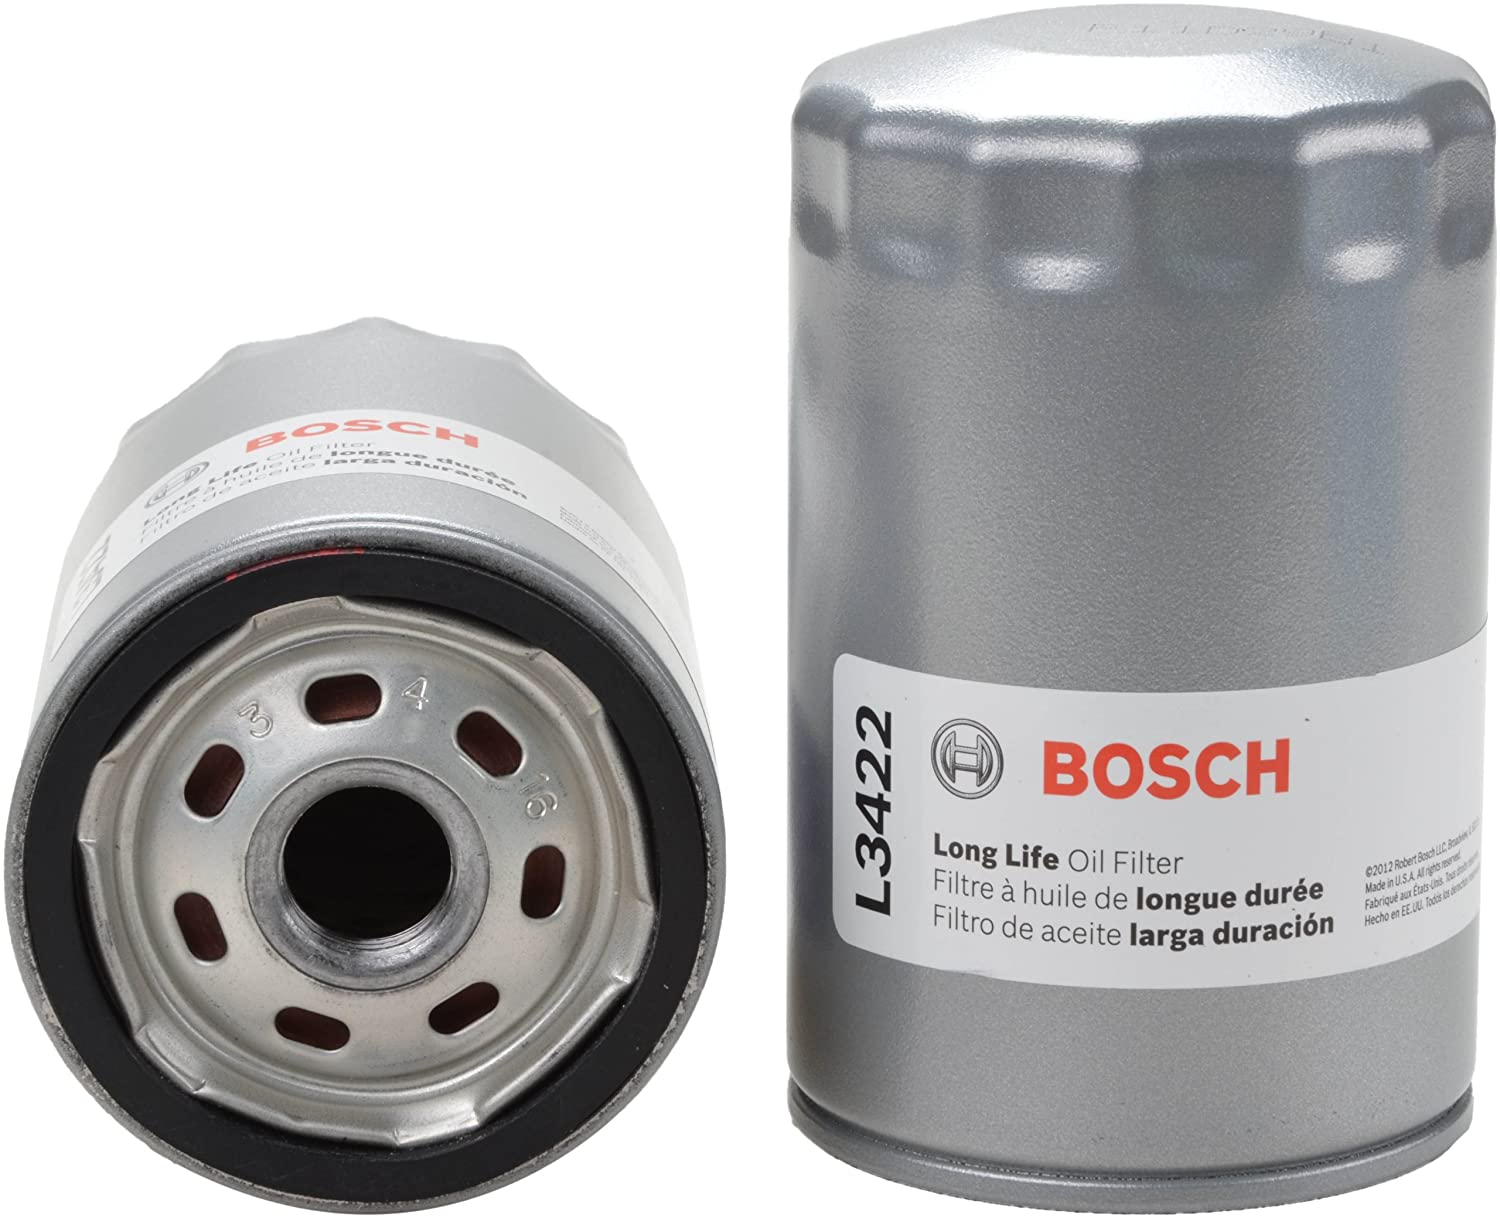 Amazon.com: Bosch l3422 larga vida Filtro de aceite: Automotive